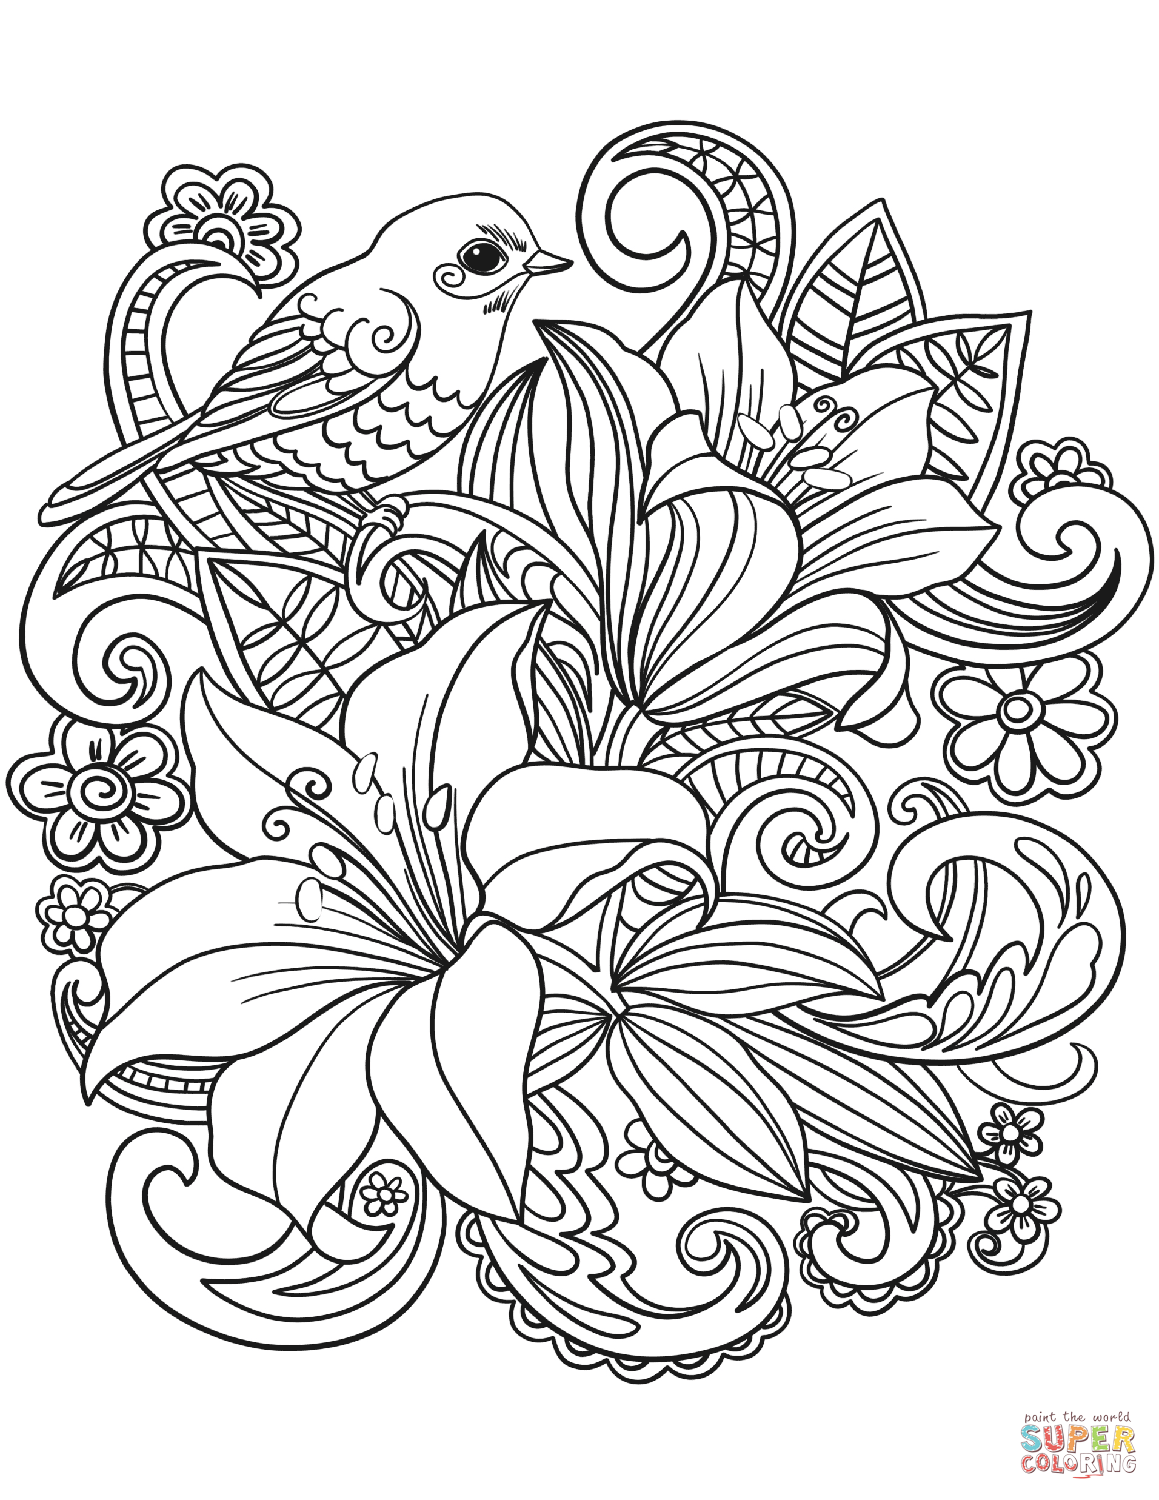 Skylark and Flowers coloring page | Free Printable Coloring Pages ...